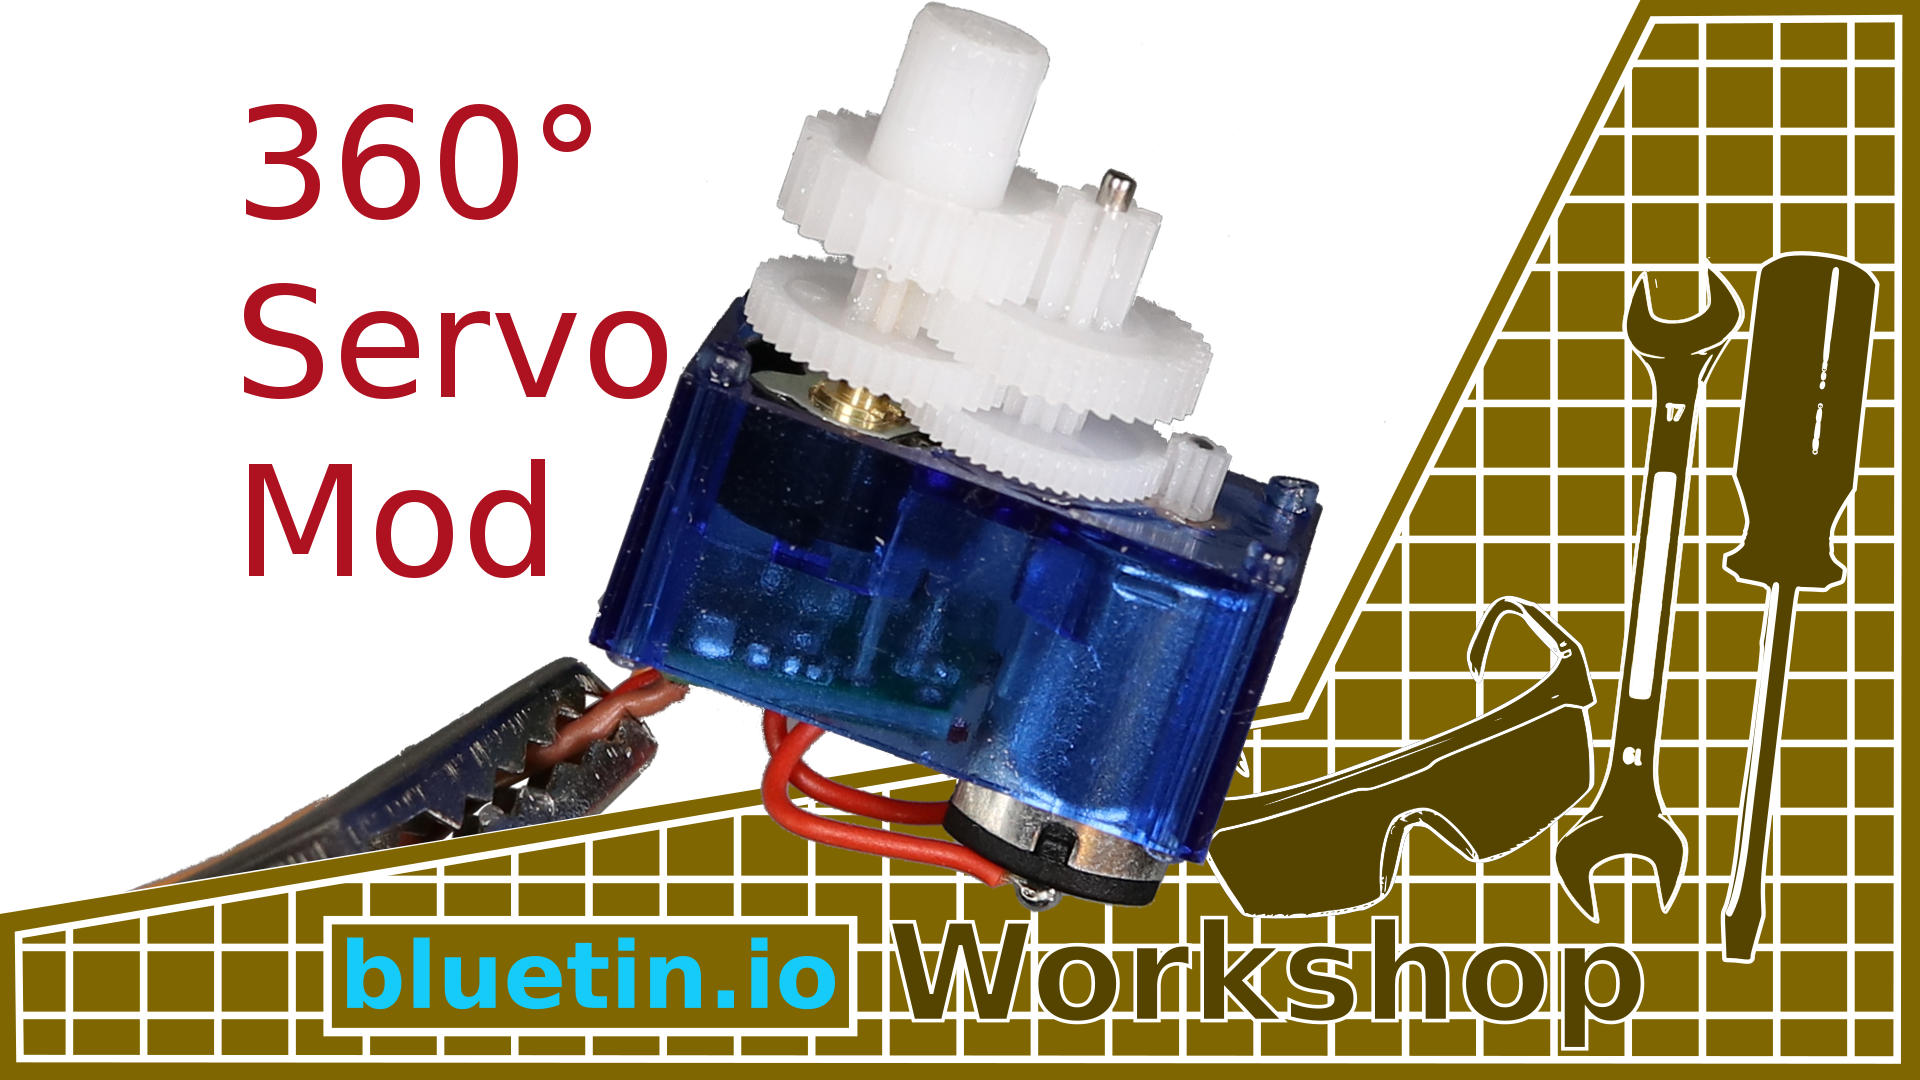 360 Degree Mod For Servo Continuous Rotation Guide